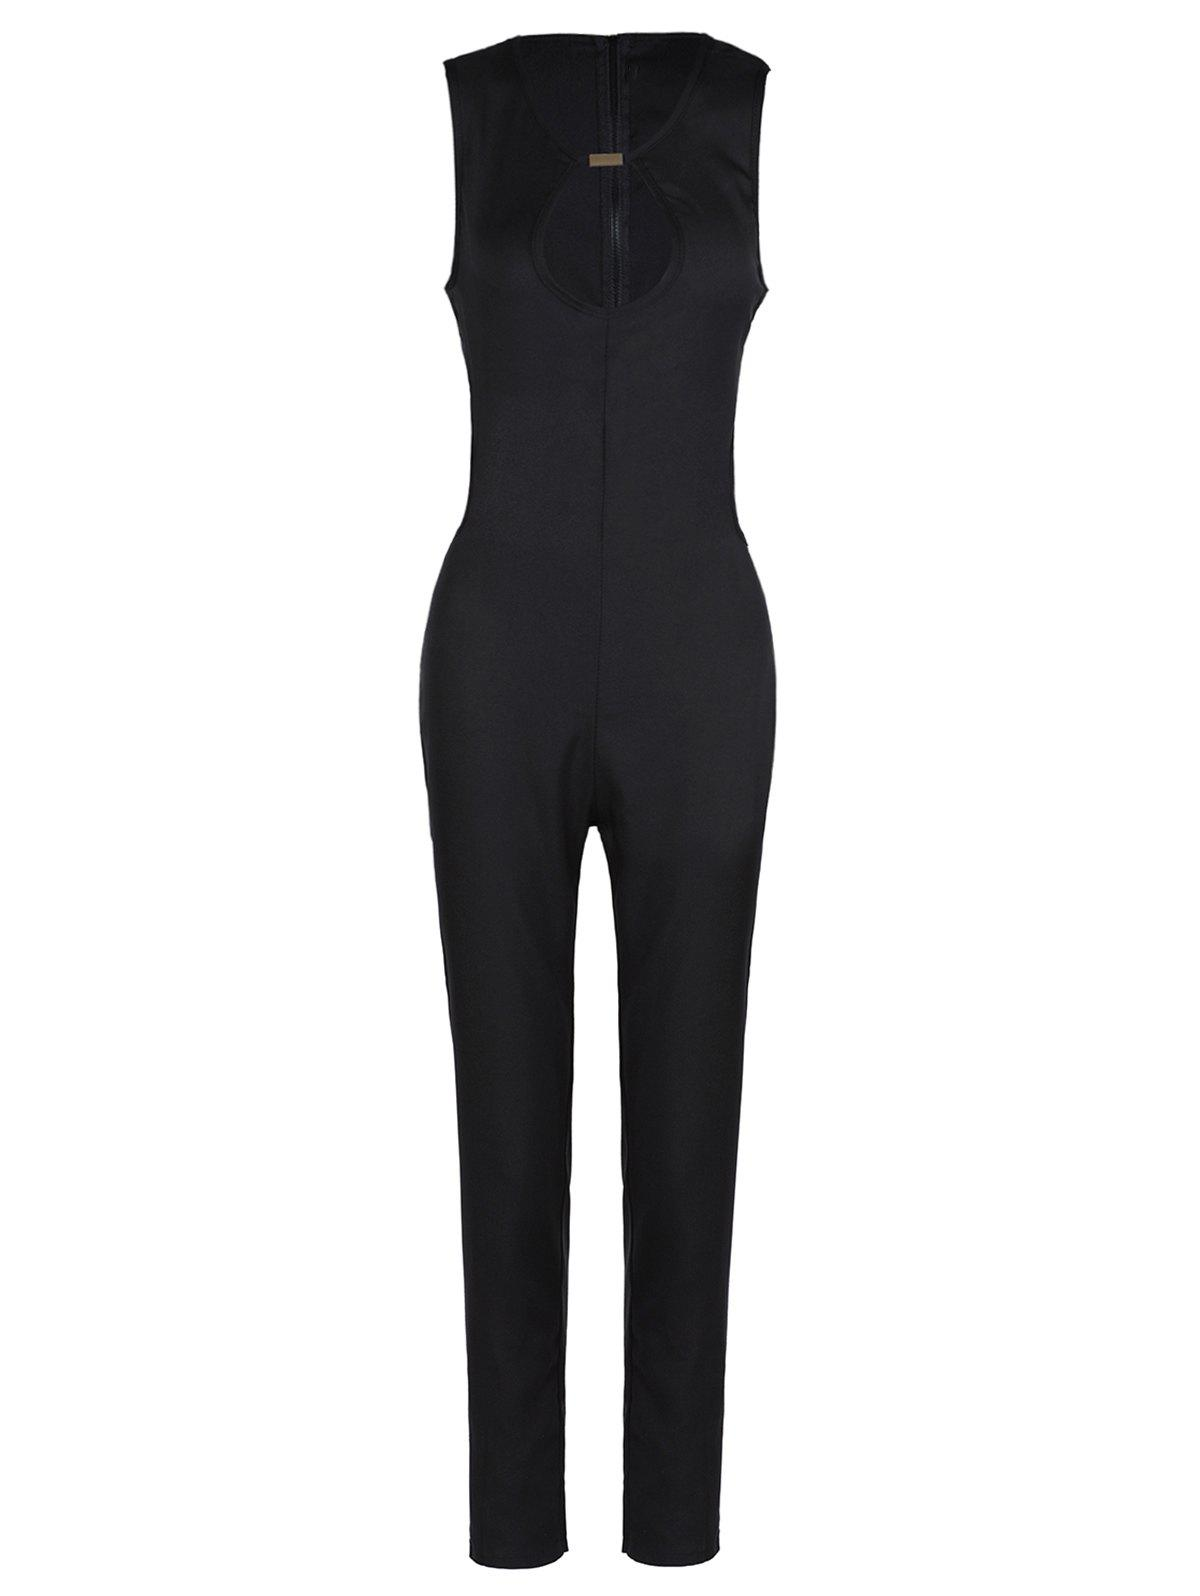 Sexy Sleeveless Round Neck Hollow Out Women's Jumpsuit